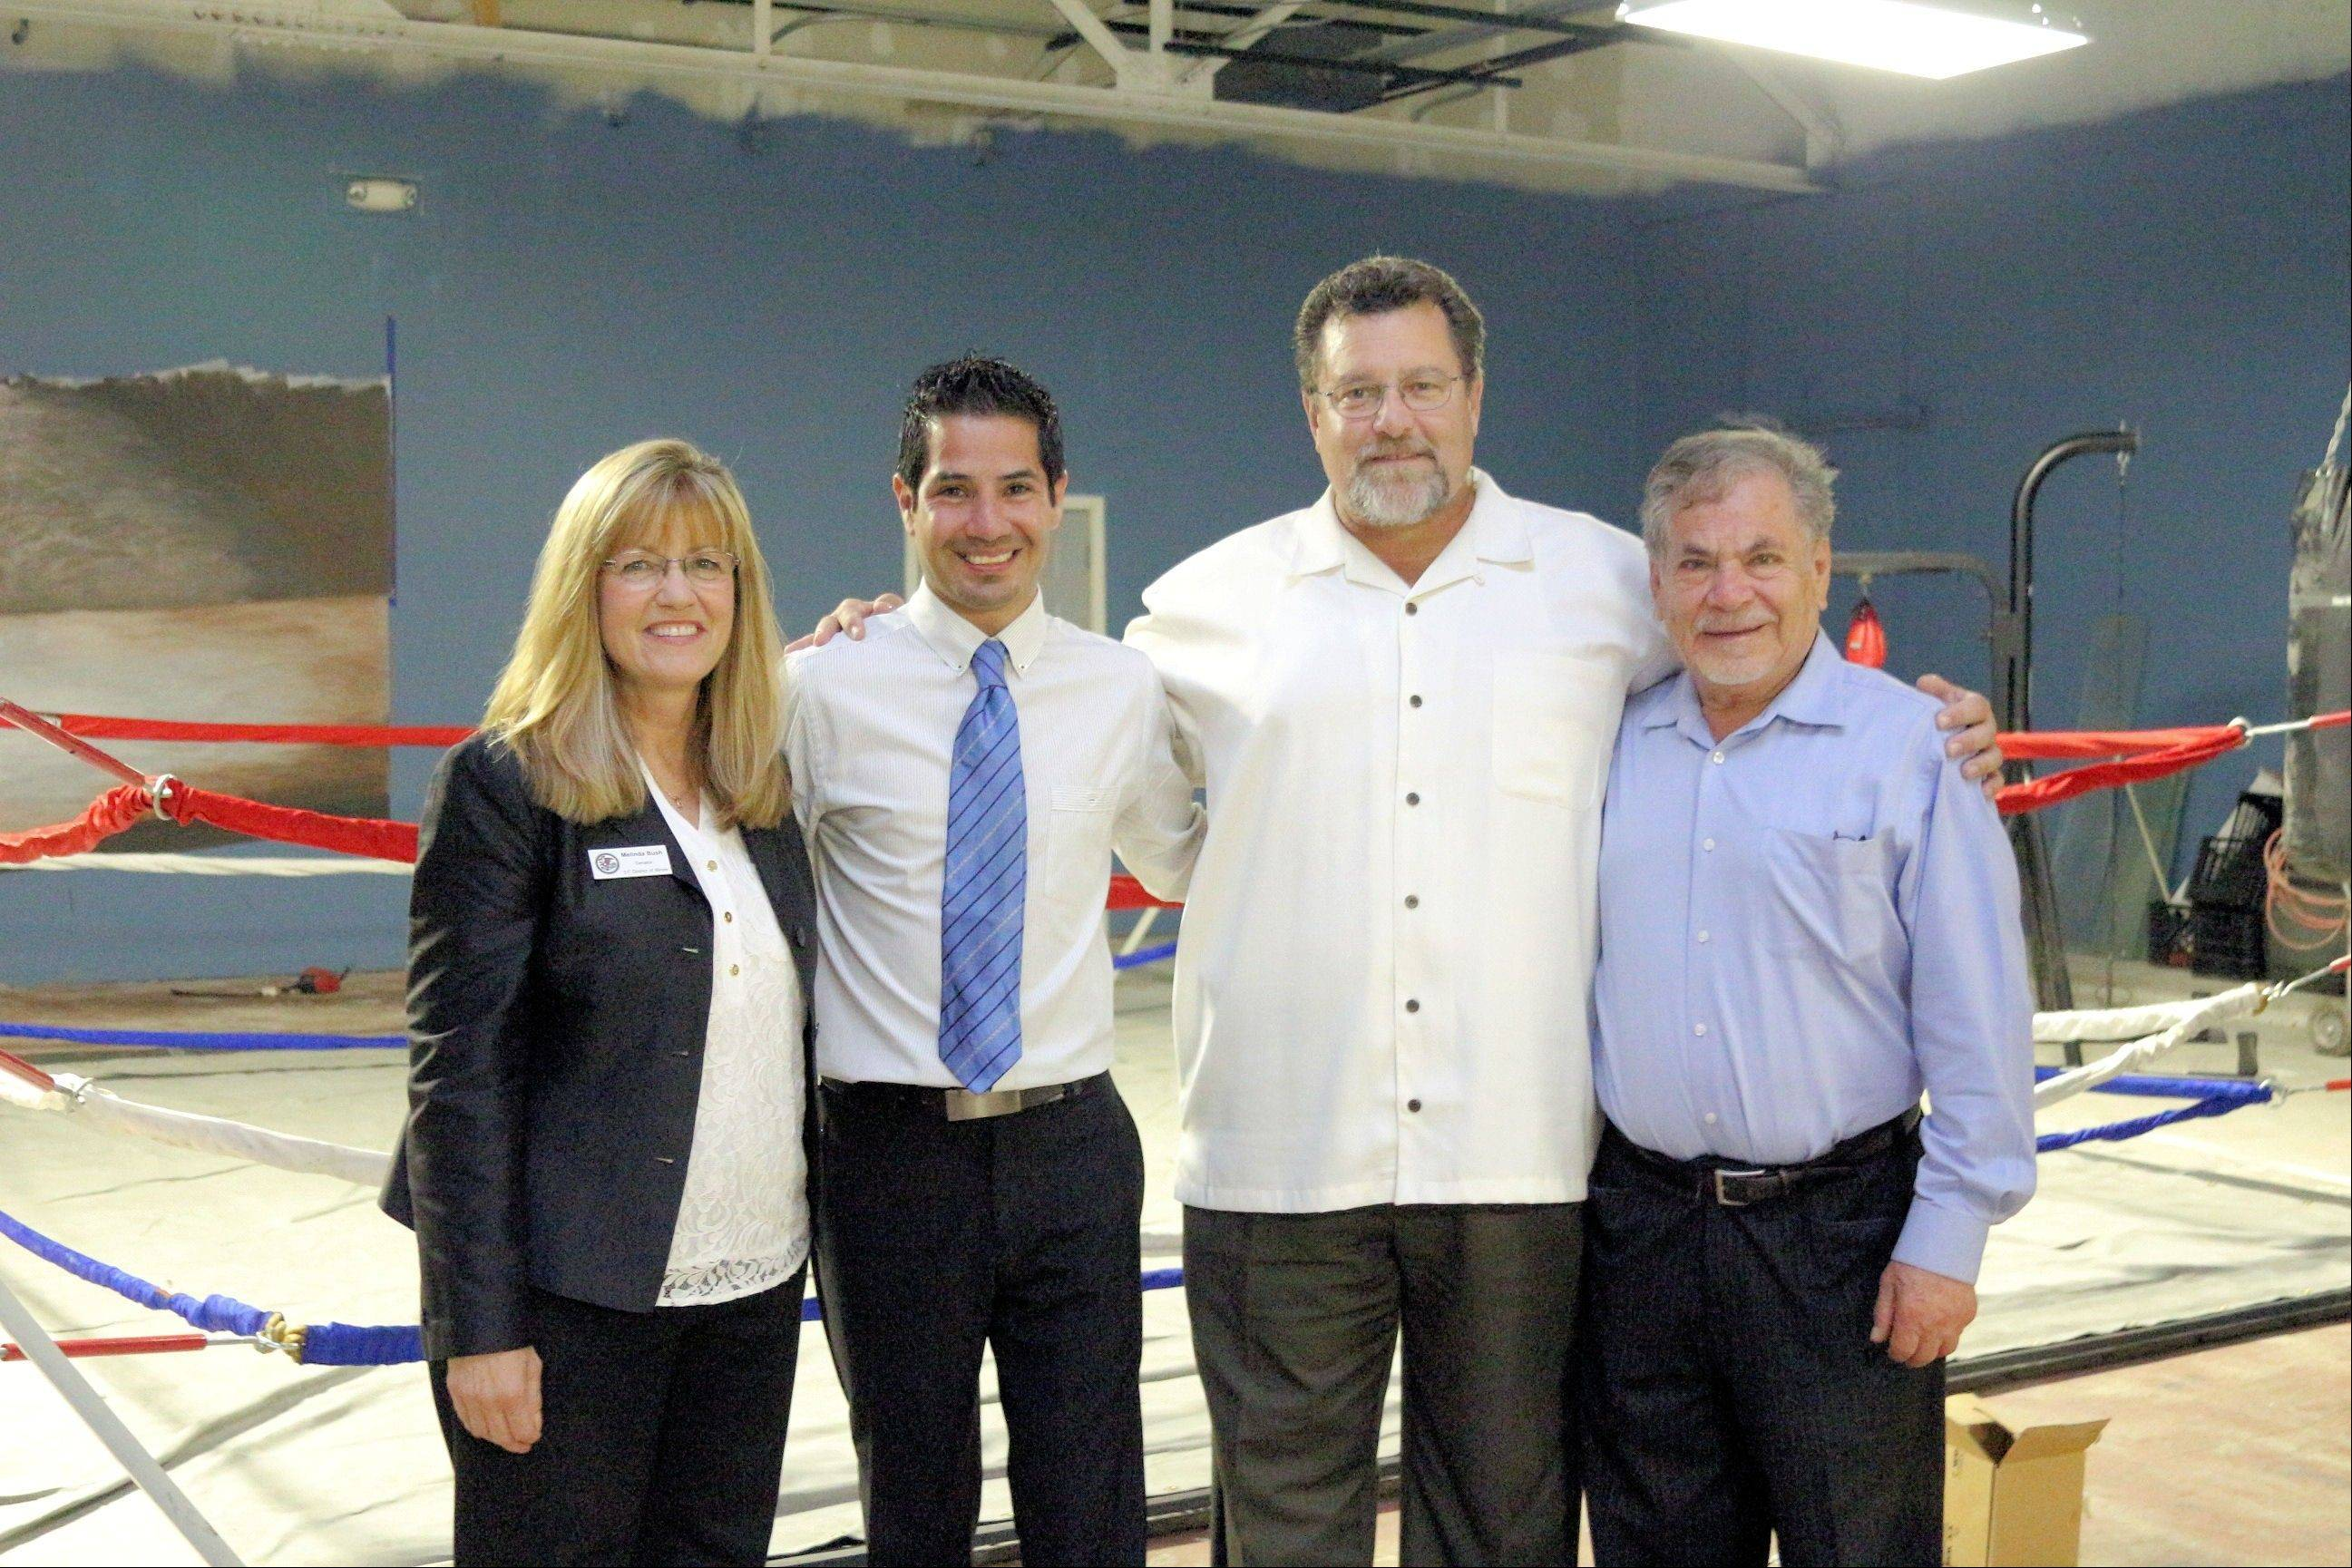 State Sen. Melinda Bush, Jose Hernandez Jr., Round Lake Mayor Dan MacGillis, and Jose Hernandez Sr. at the All Star Boxing gym fundraiser.